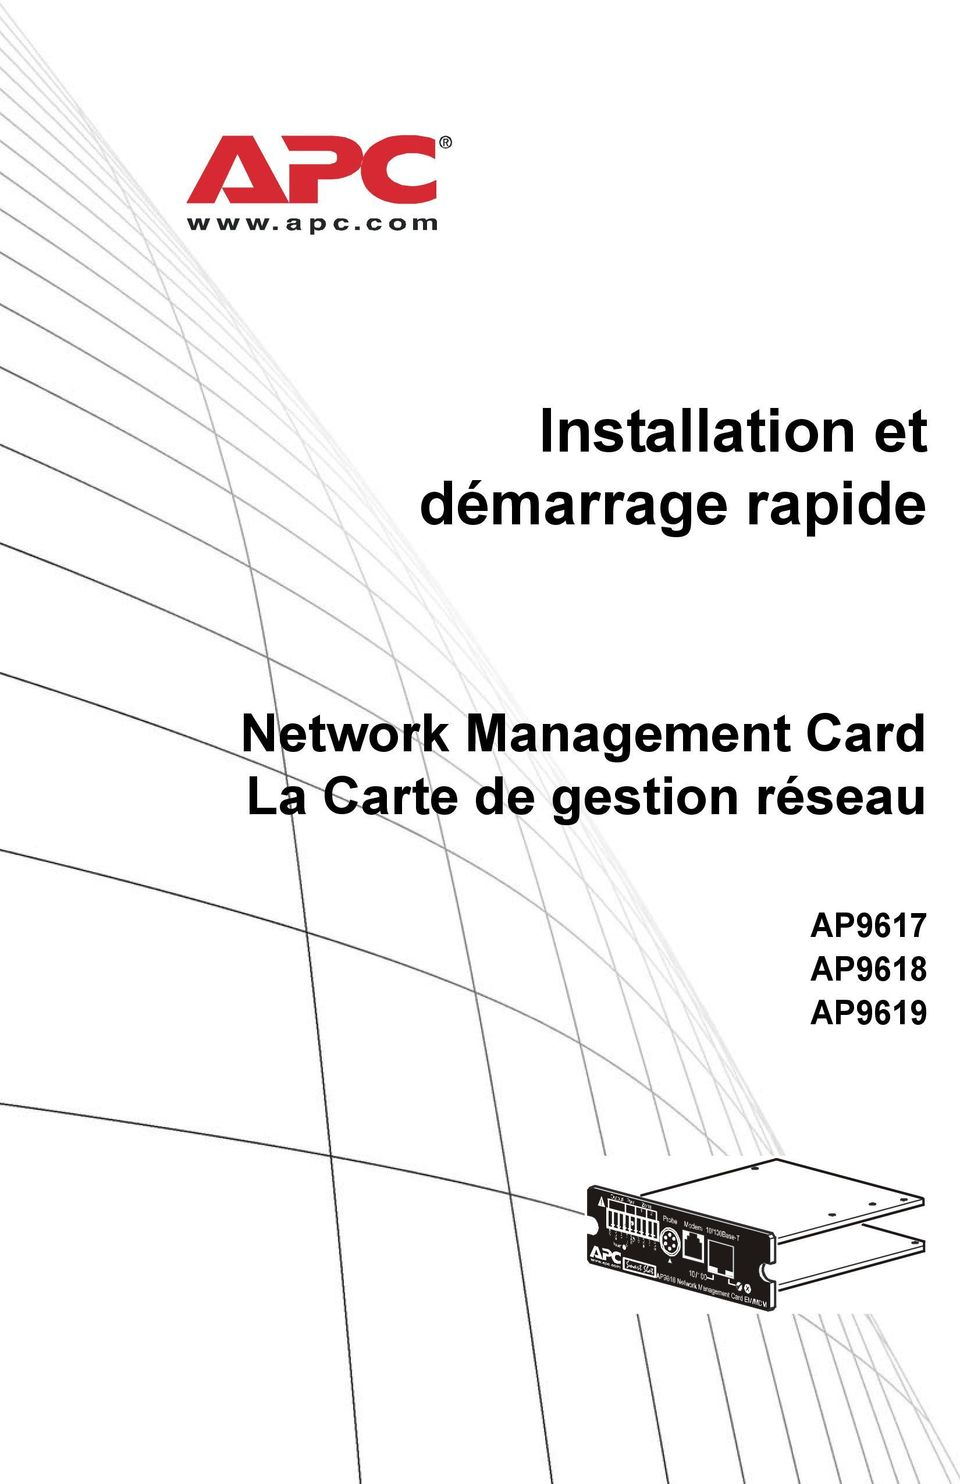 Card La Carte de gestion